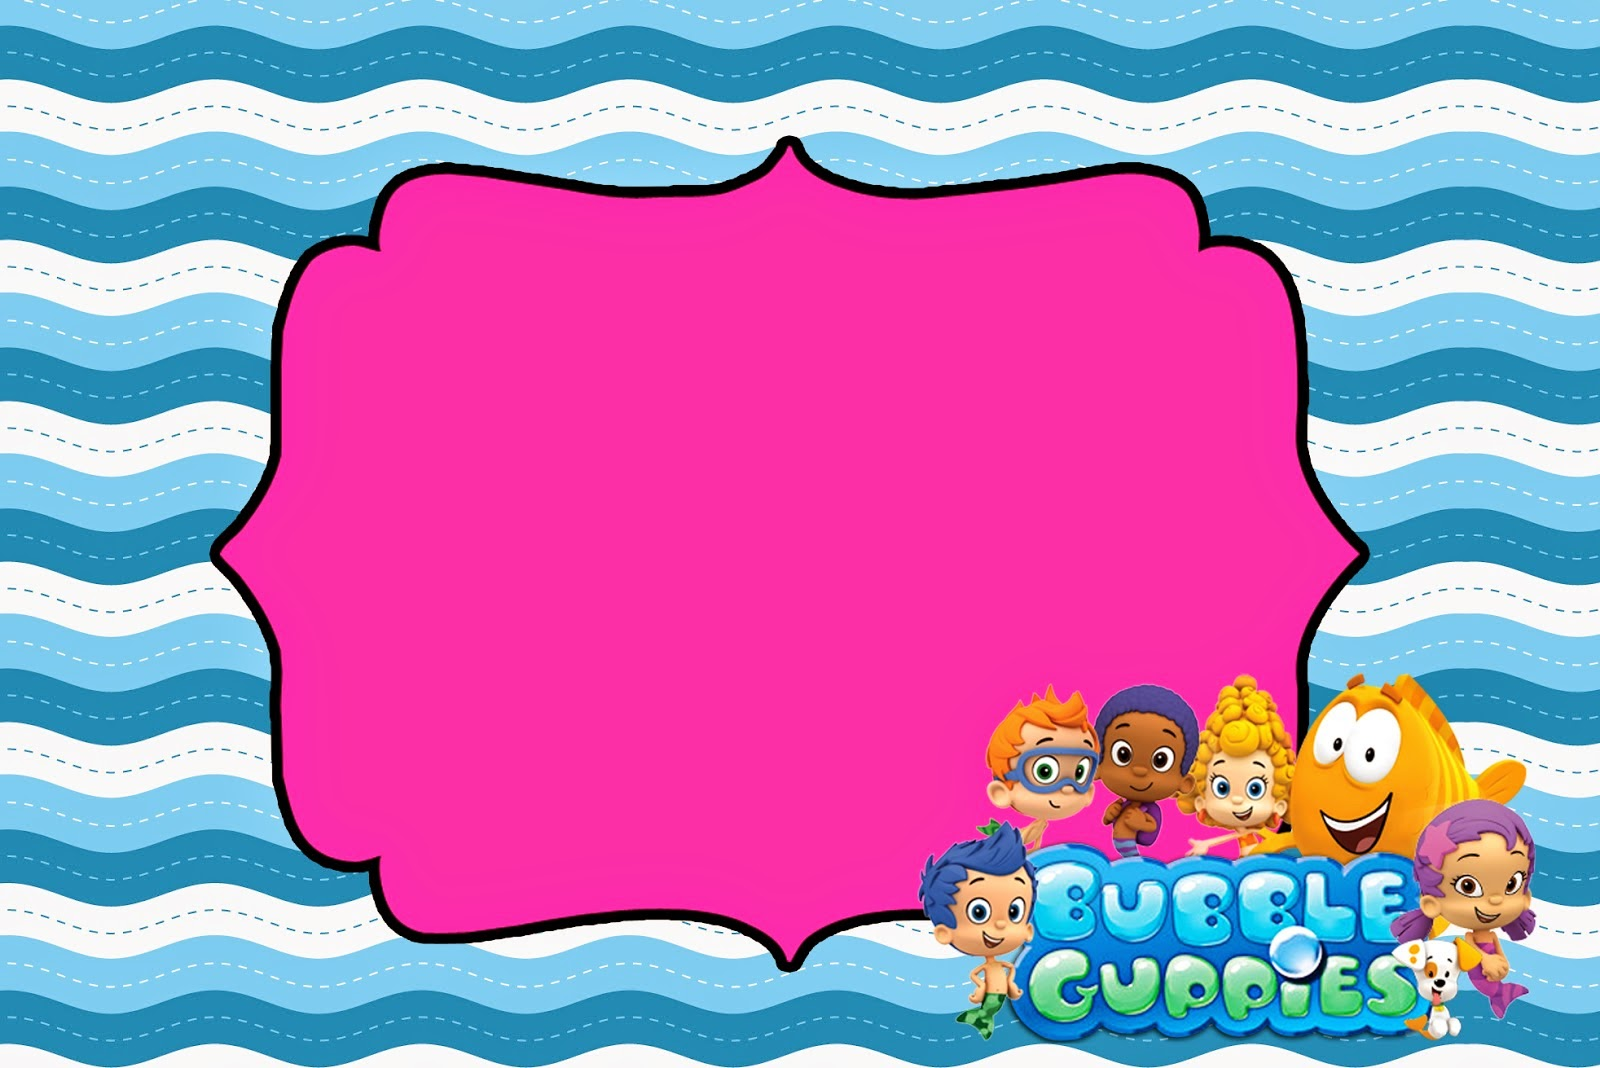 Bubble Guppies Free Printable Invitations. | Oh My Fiesta! in english